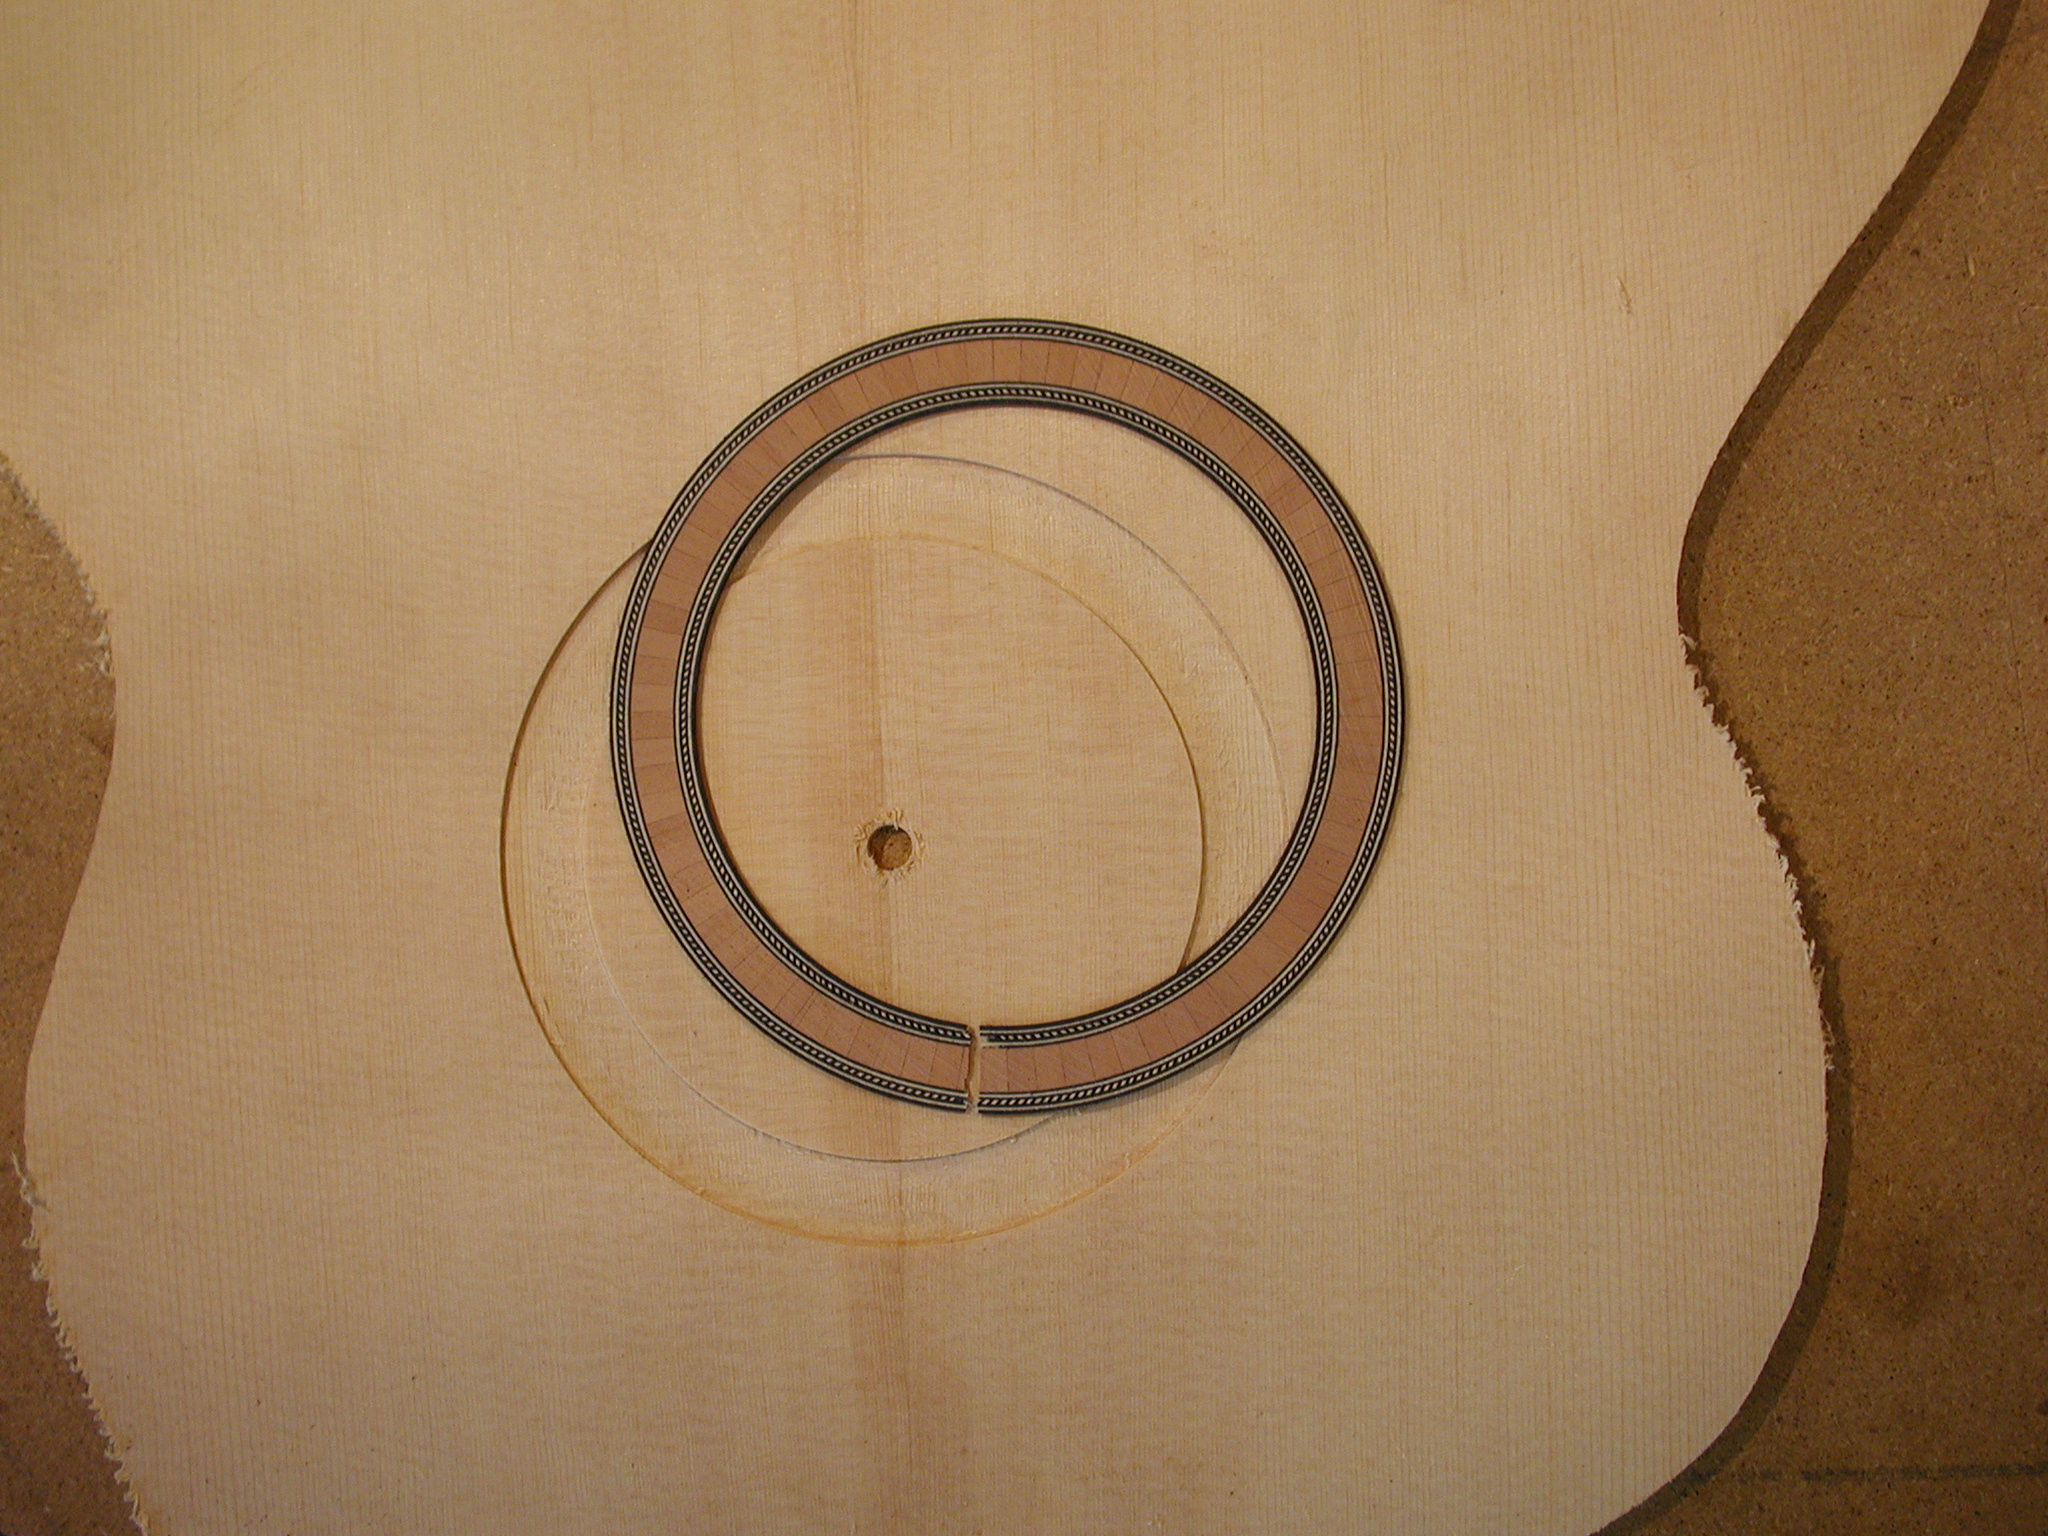 Top: The soundhole rosette is being inserted.